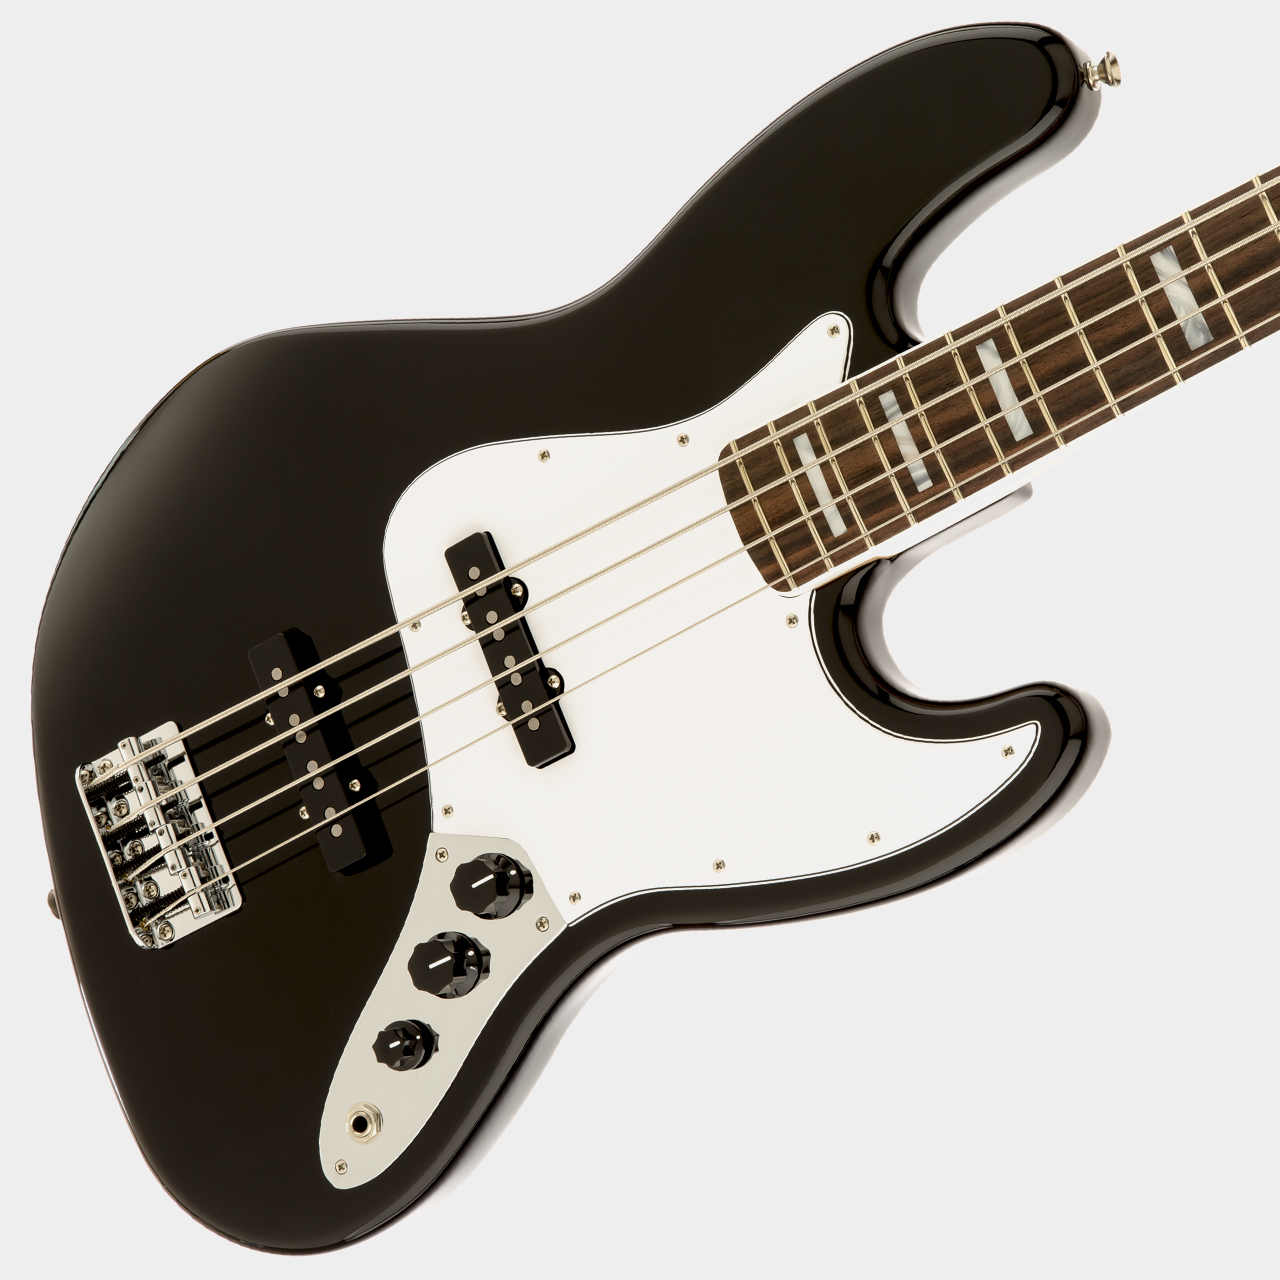 FENDER Classic '70s Jazz Bass Black Body Detail